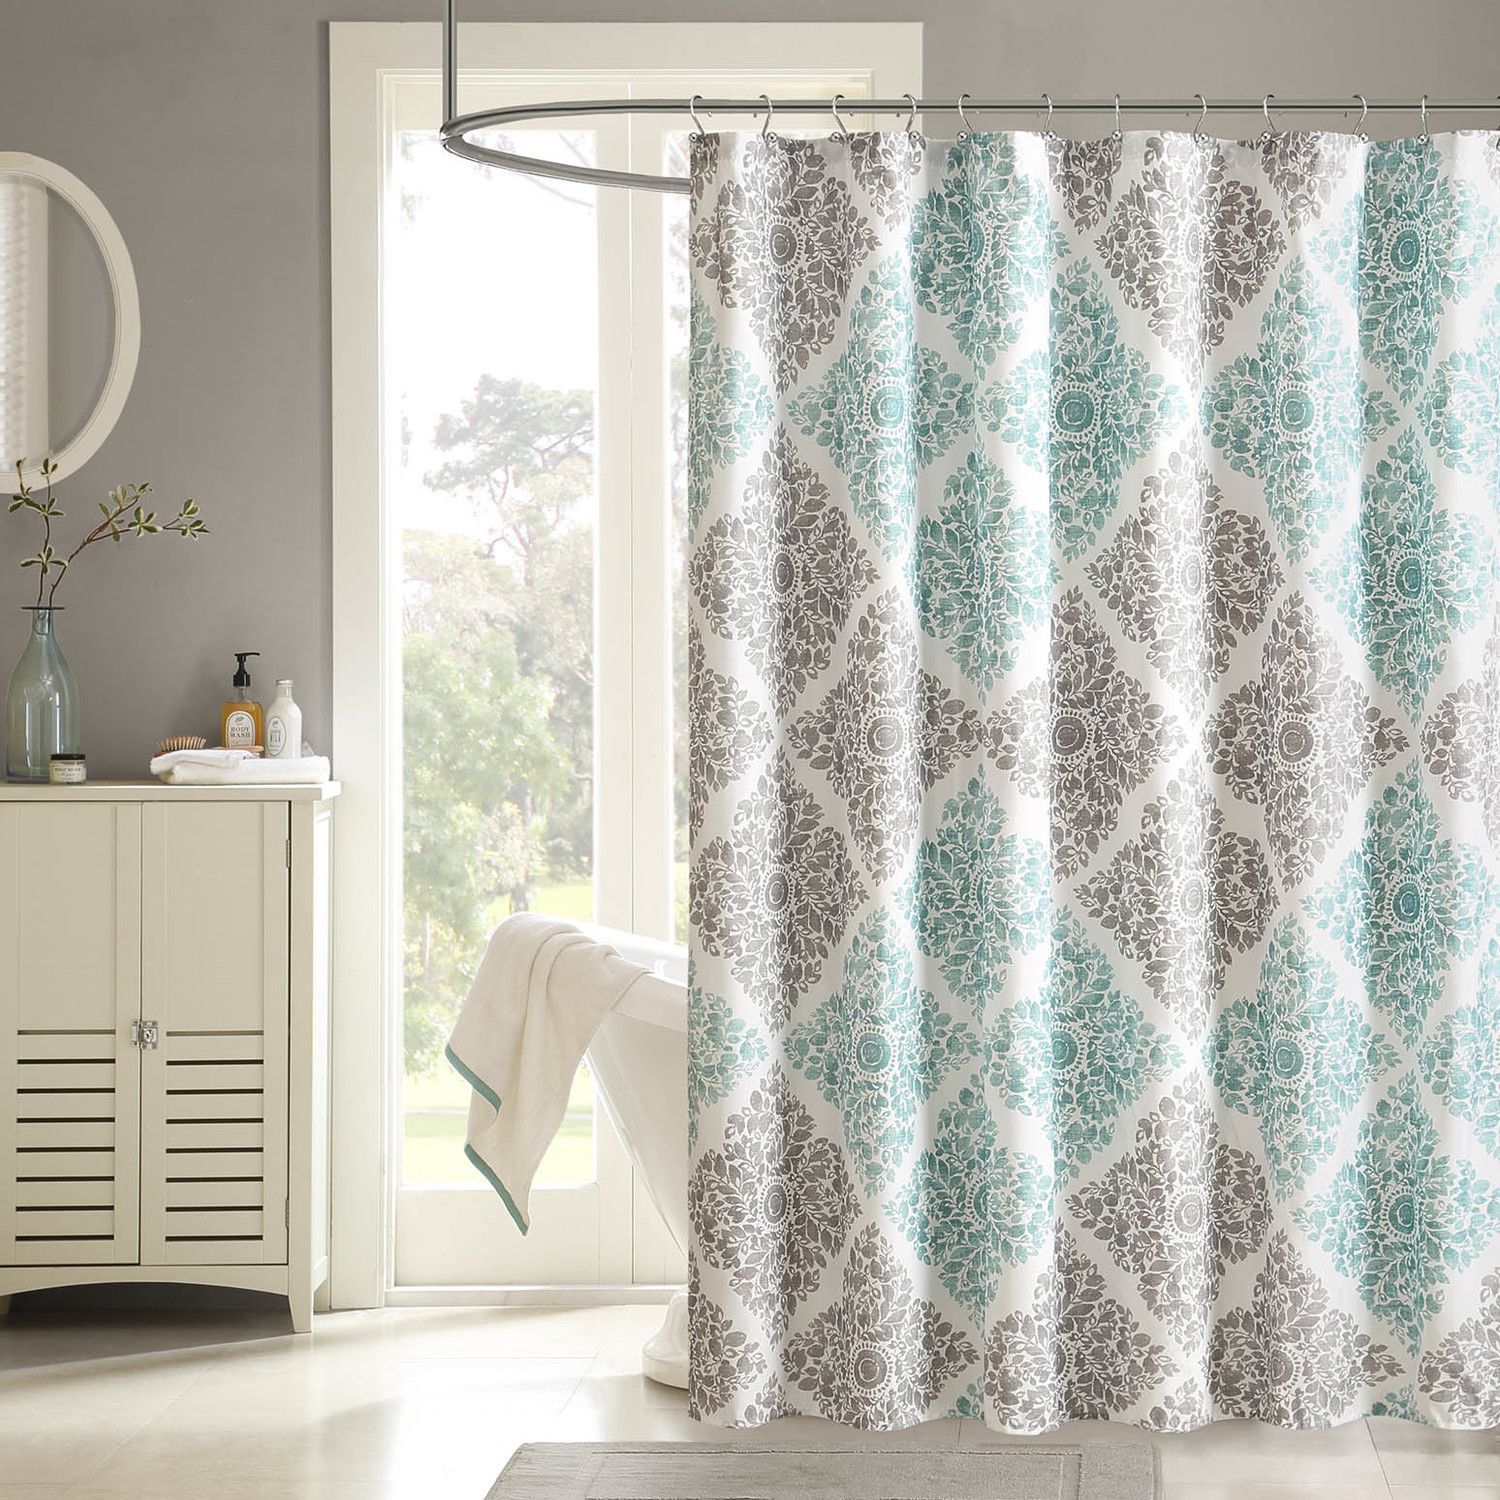 Extra Long Shower Curtain Liner For Your Bathroom Decor Ideas: Modern  Bathroom Design With White